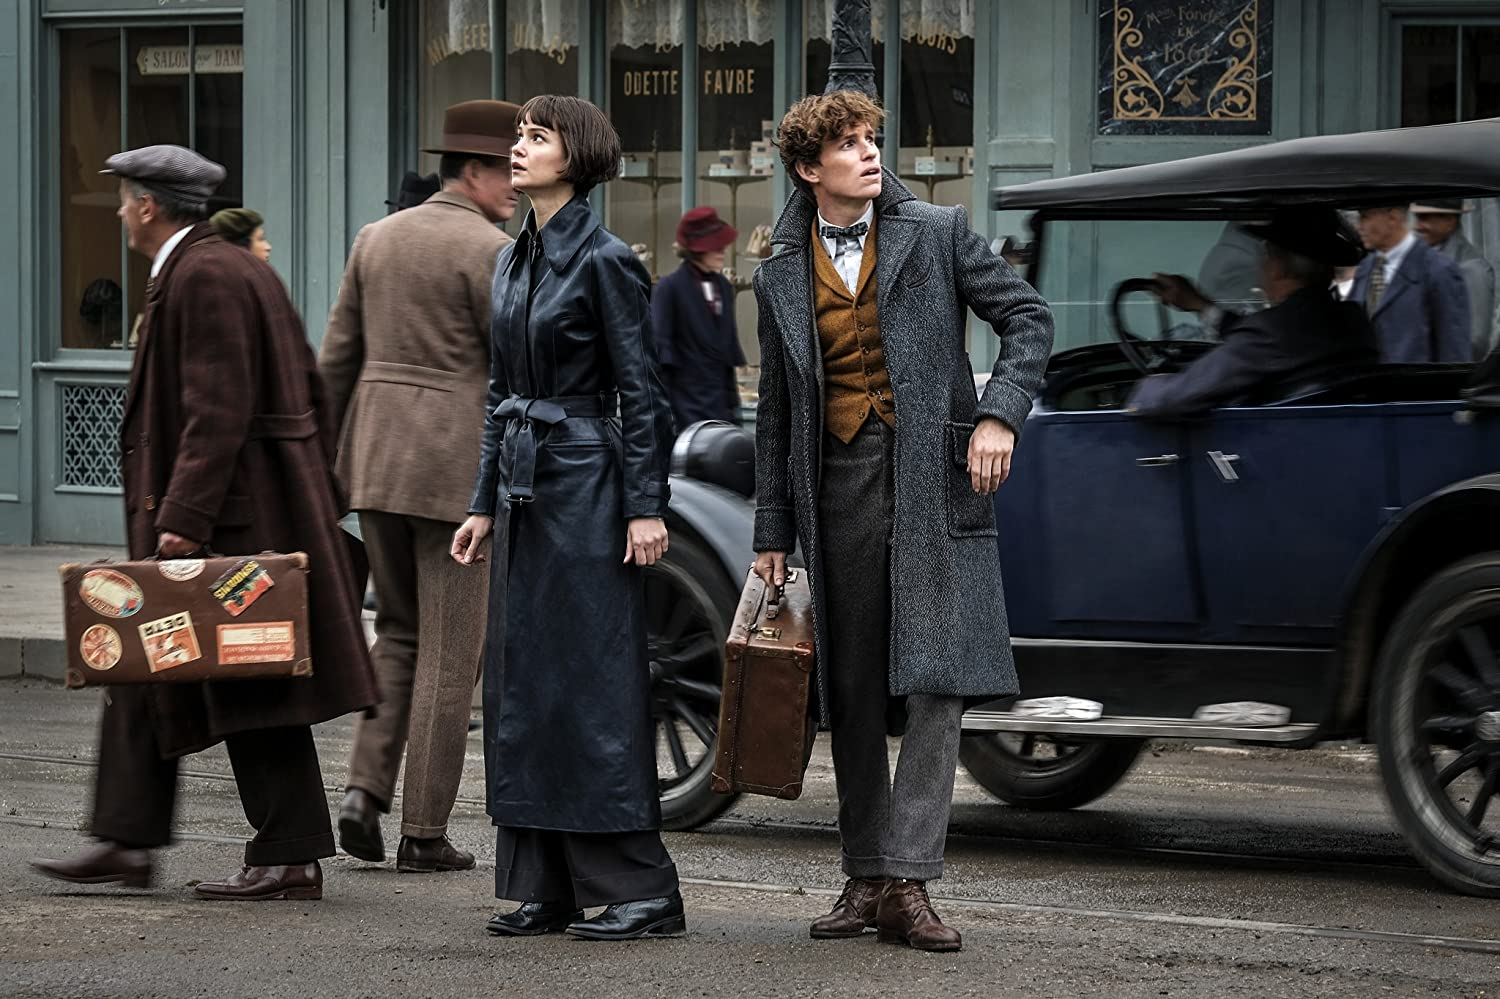 Eddie Redmayne and Katherine Waterston in Fantastic Beasts: The Crimes of Grindelwald (2018)